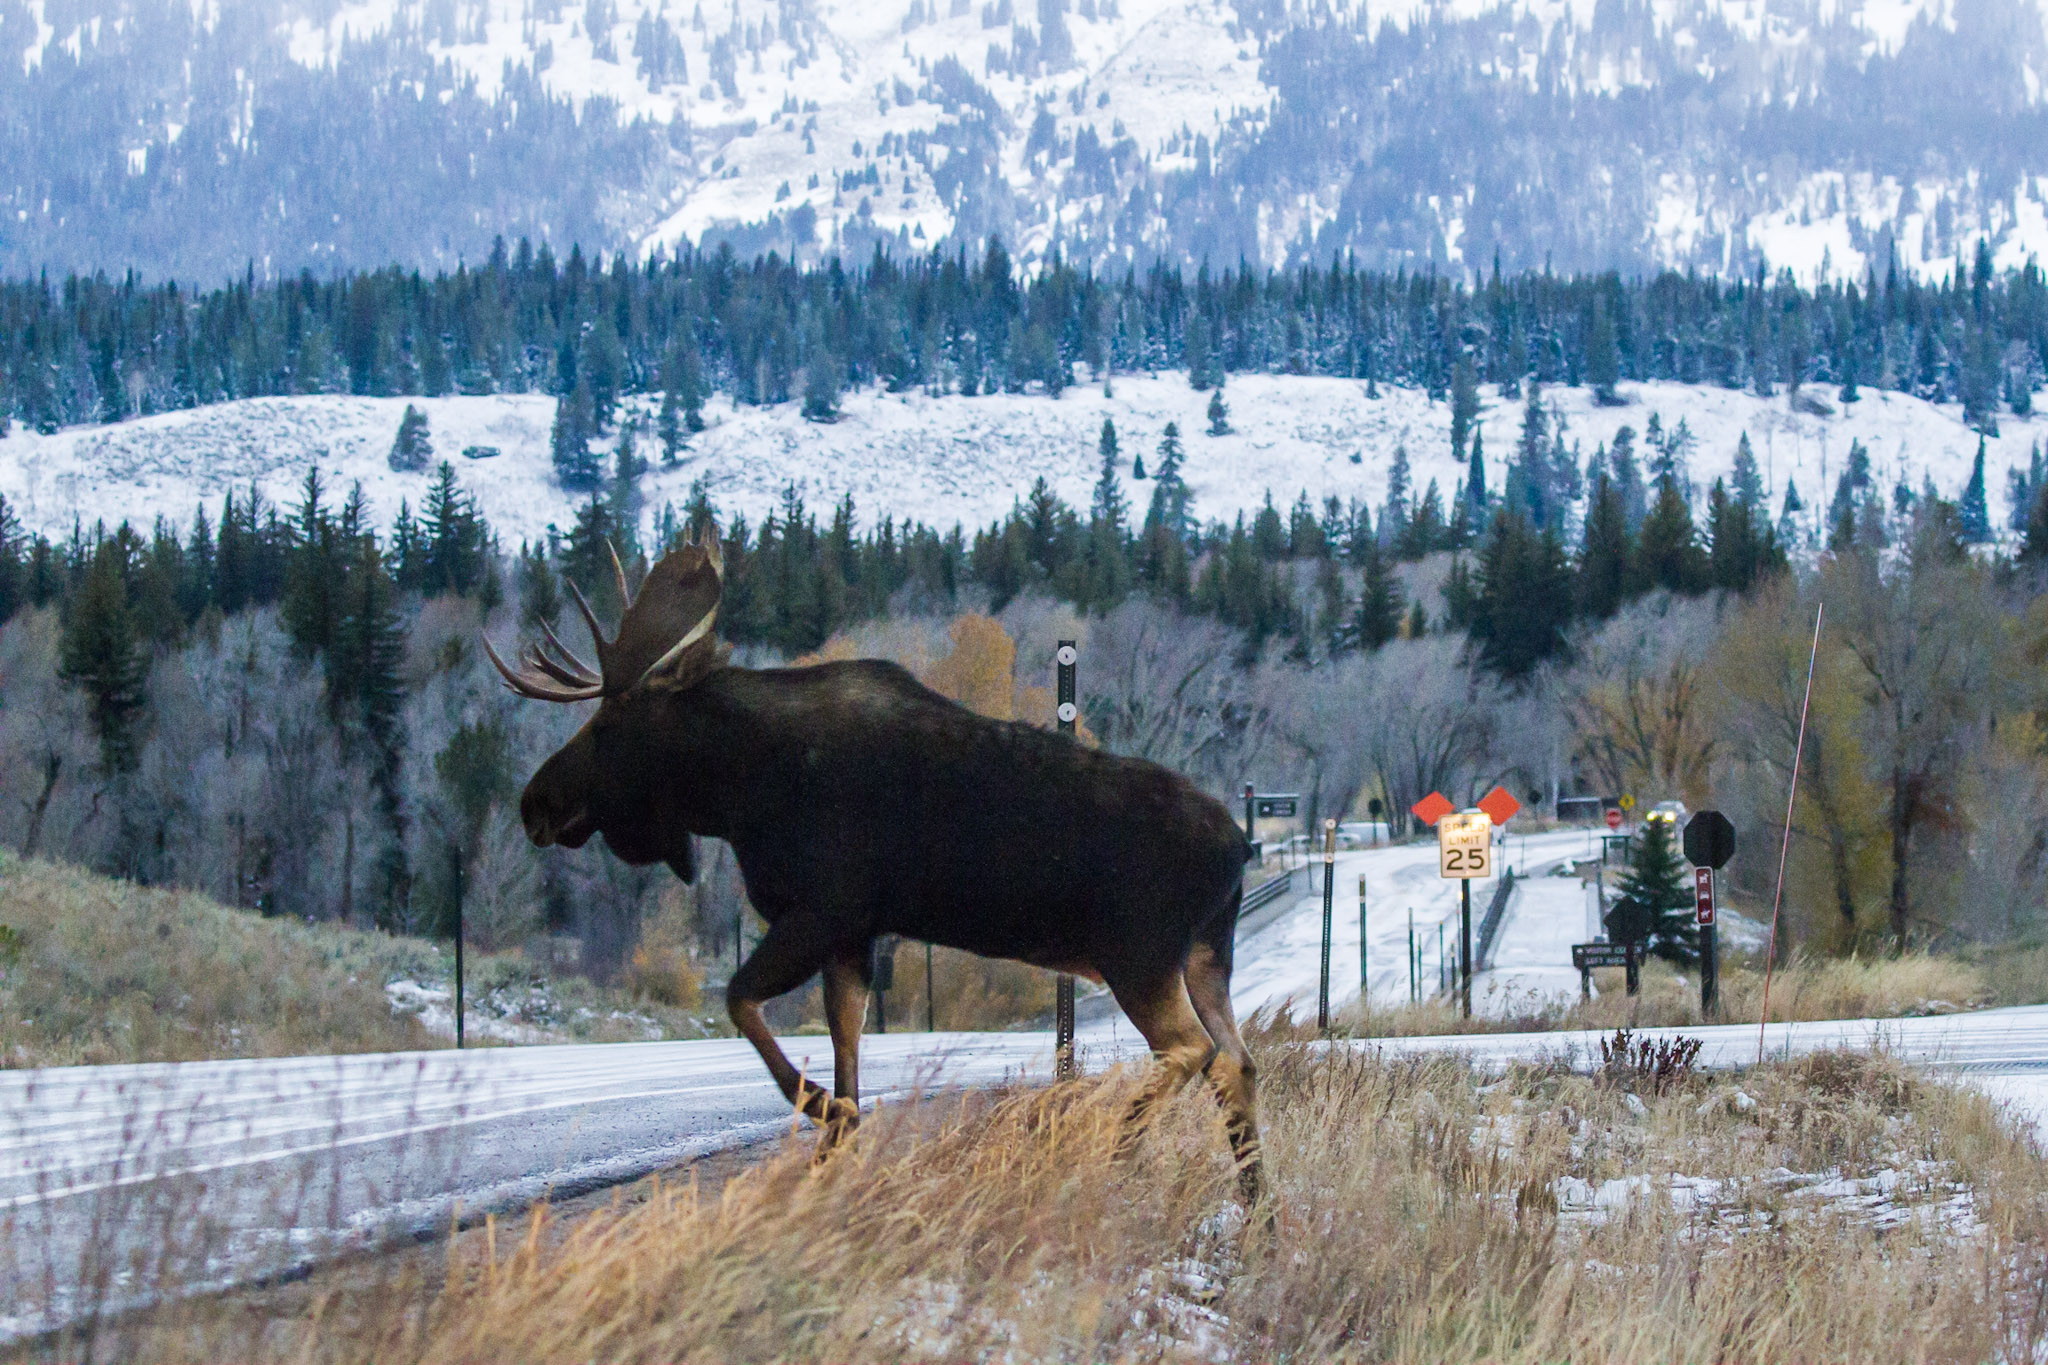 A bull moose crosses the highway in Grand Teton National Park near Jackson, Wyoming. Teton County just adopted a plan that will eventually make local roads safer for both drivers and wildlife. (Photo courtesy Josh Metten.)